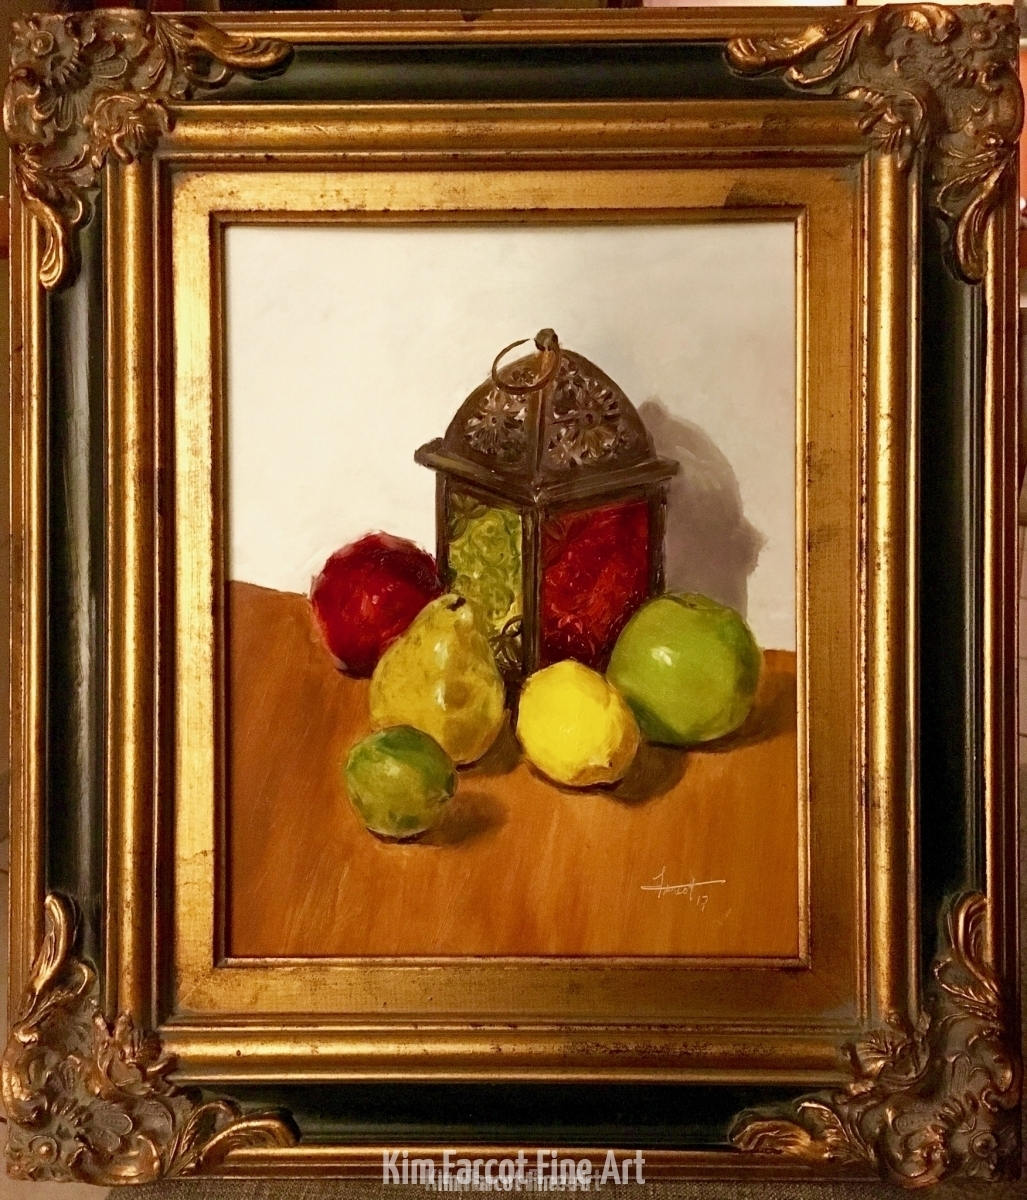 Lantern & Fruit, available